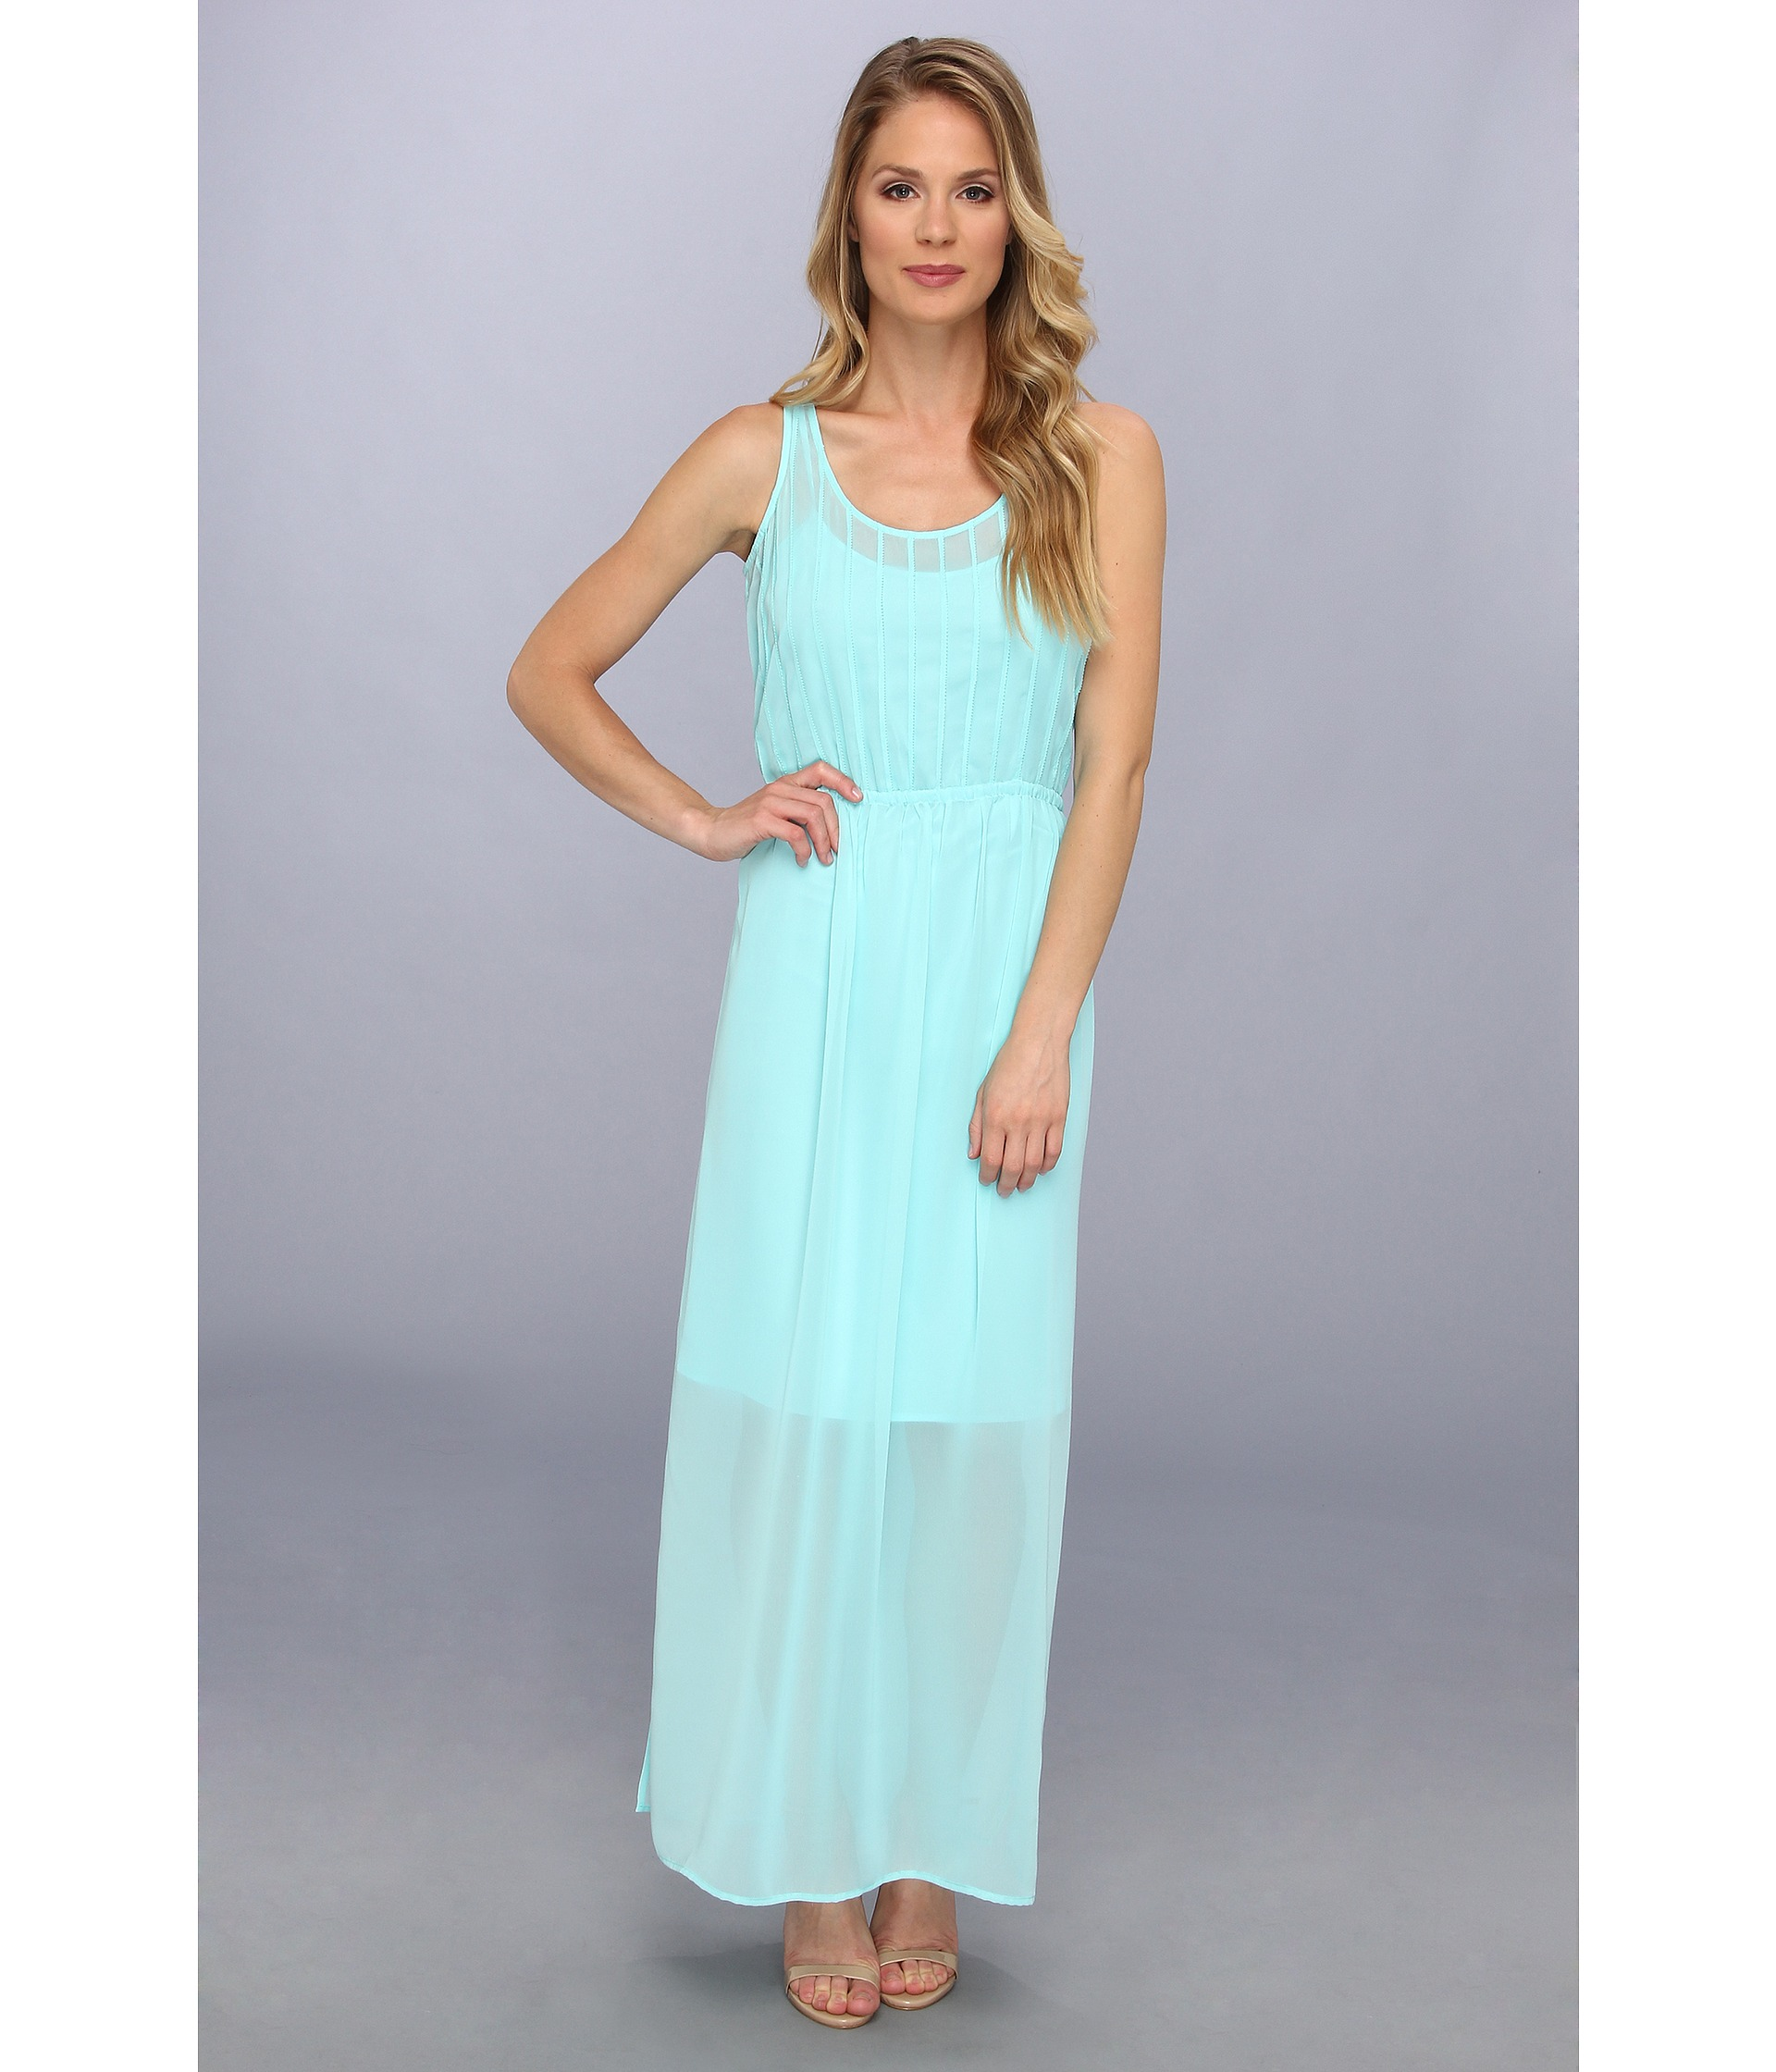 Calvin klein maxi dress clearance – Womans wallet and dresses